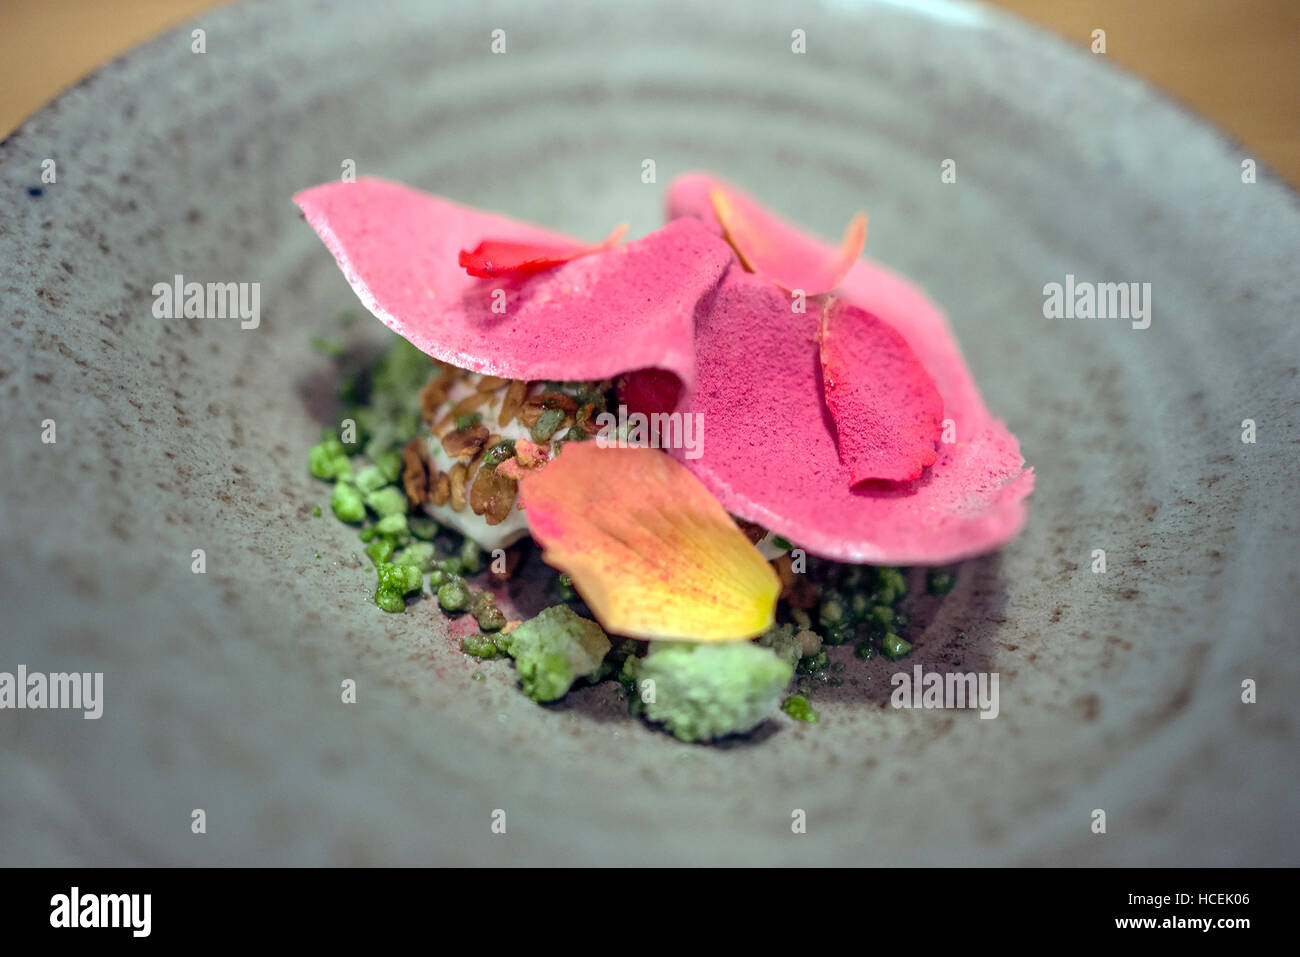 Fine Dining, Modern Cuisine on Stoneware. Shot from above - Stock Image